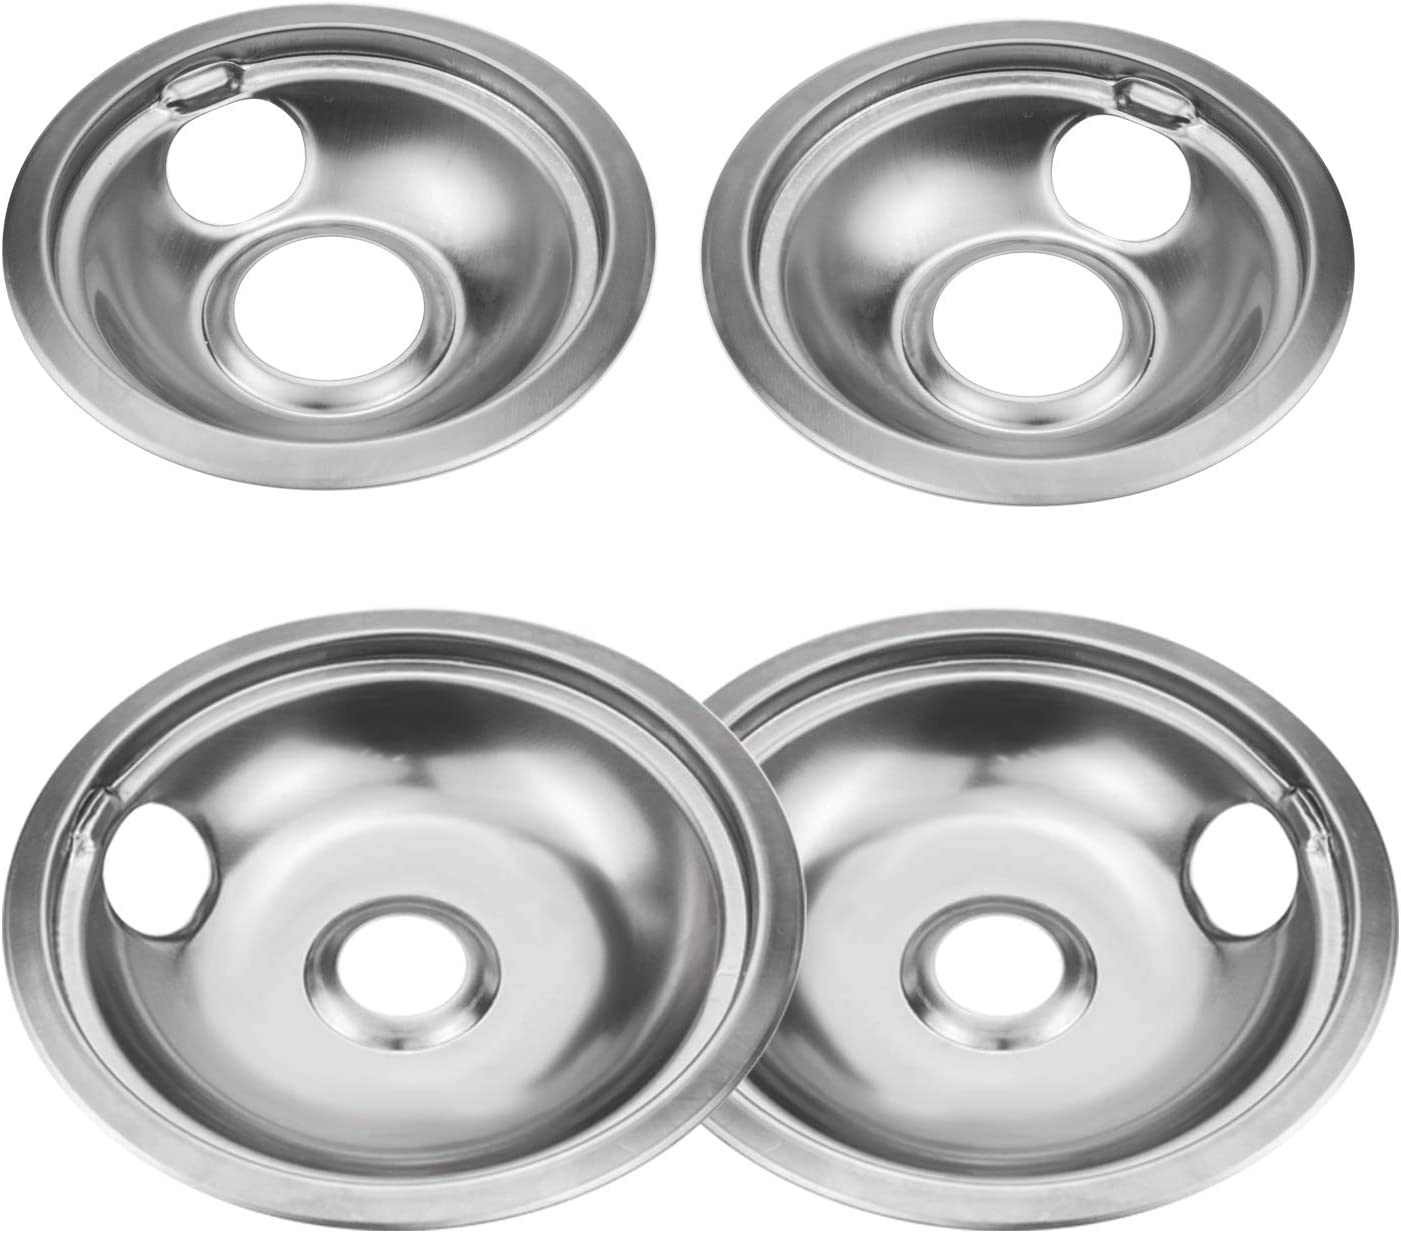 4 Pack Stainless Steel Over item handling ☆ Reflector Bowls Pan Drip Universal Excellent G Kits